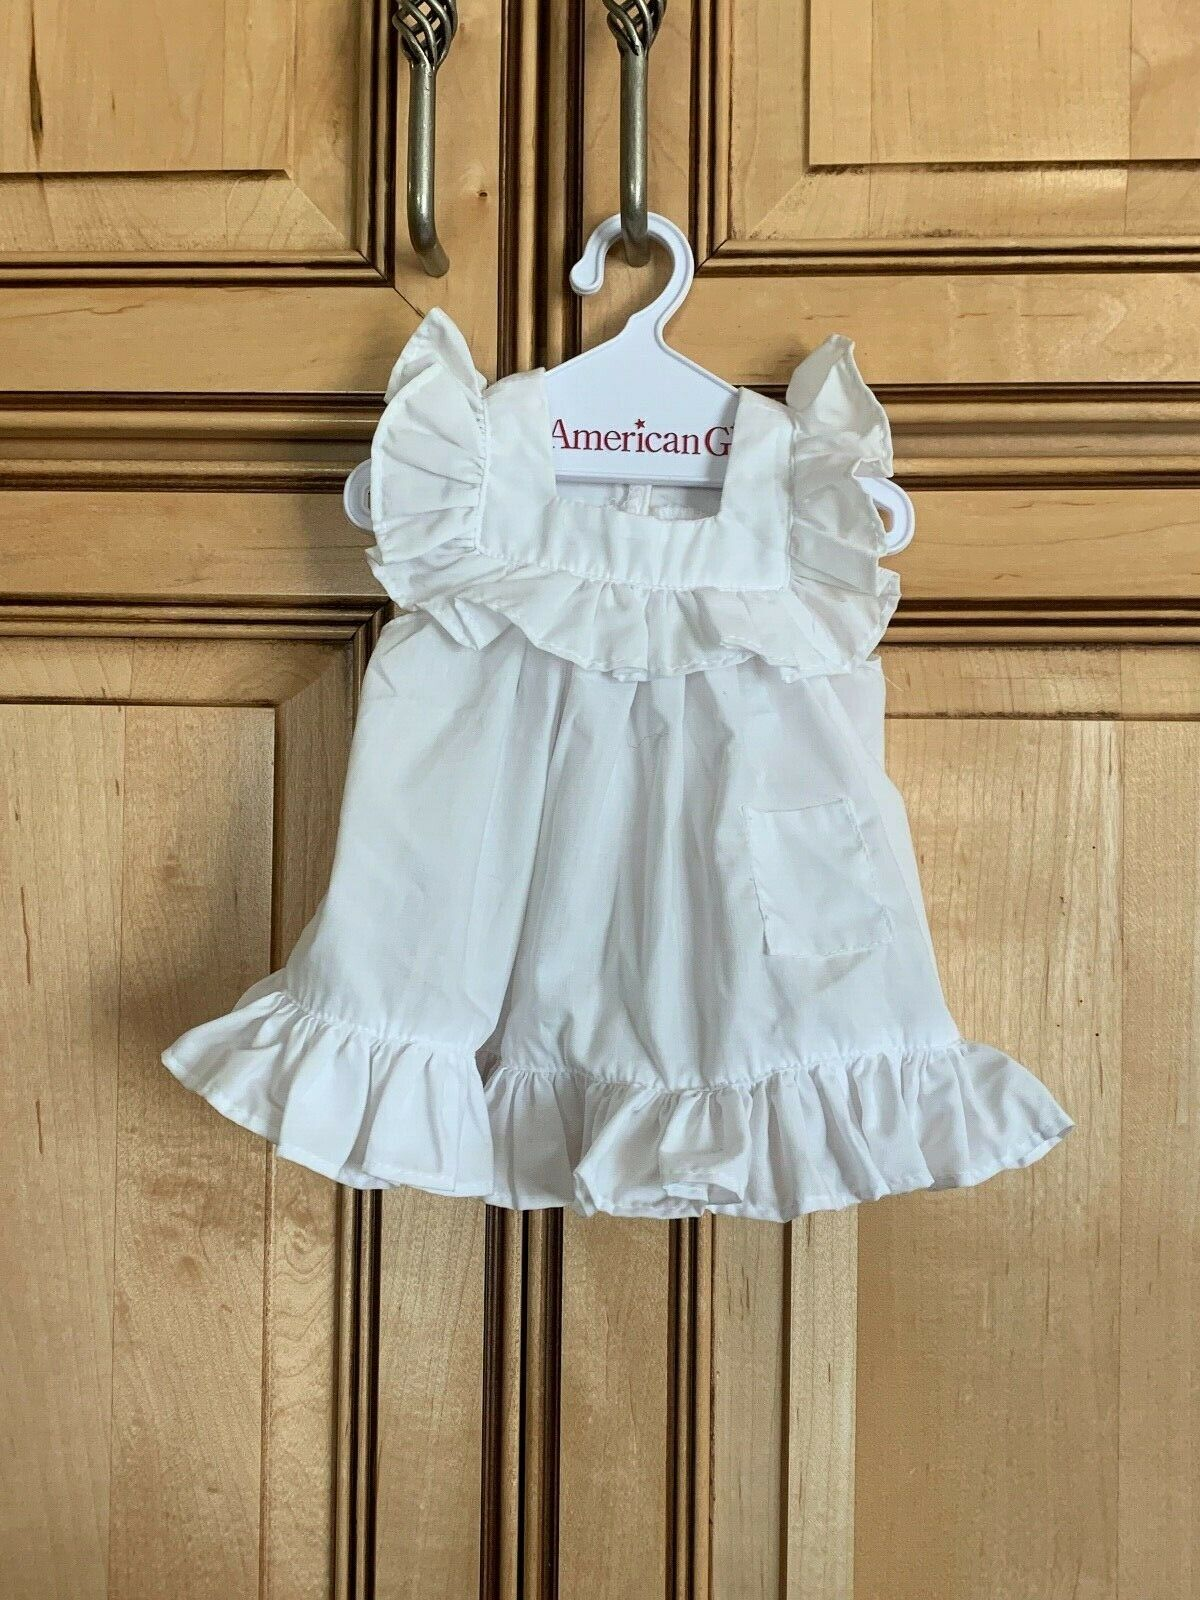 American Girl Samantha White Pinafore Apron From Play Dress EXCELLENT CONDITION